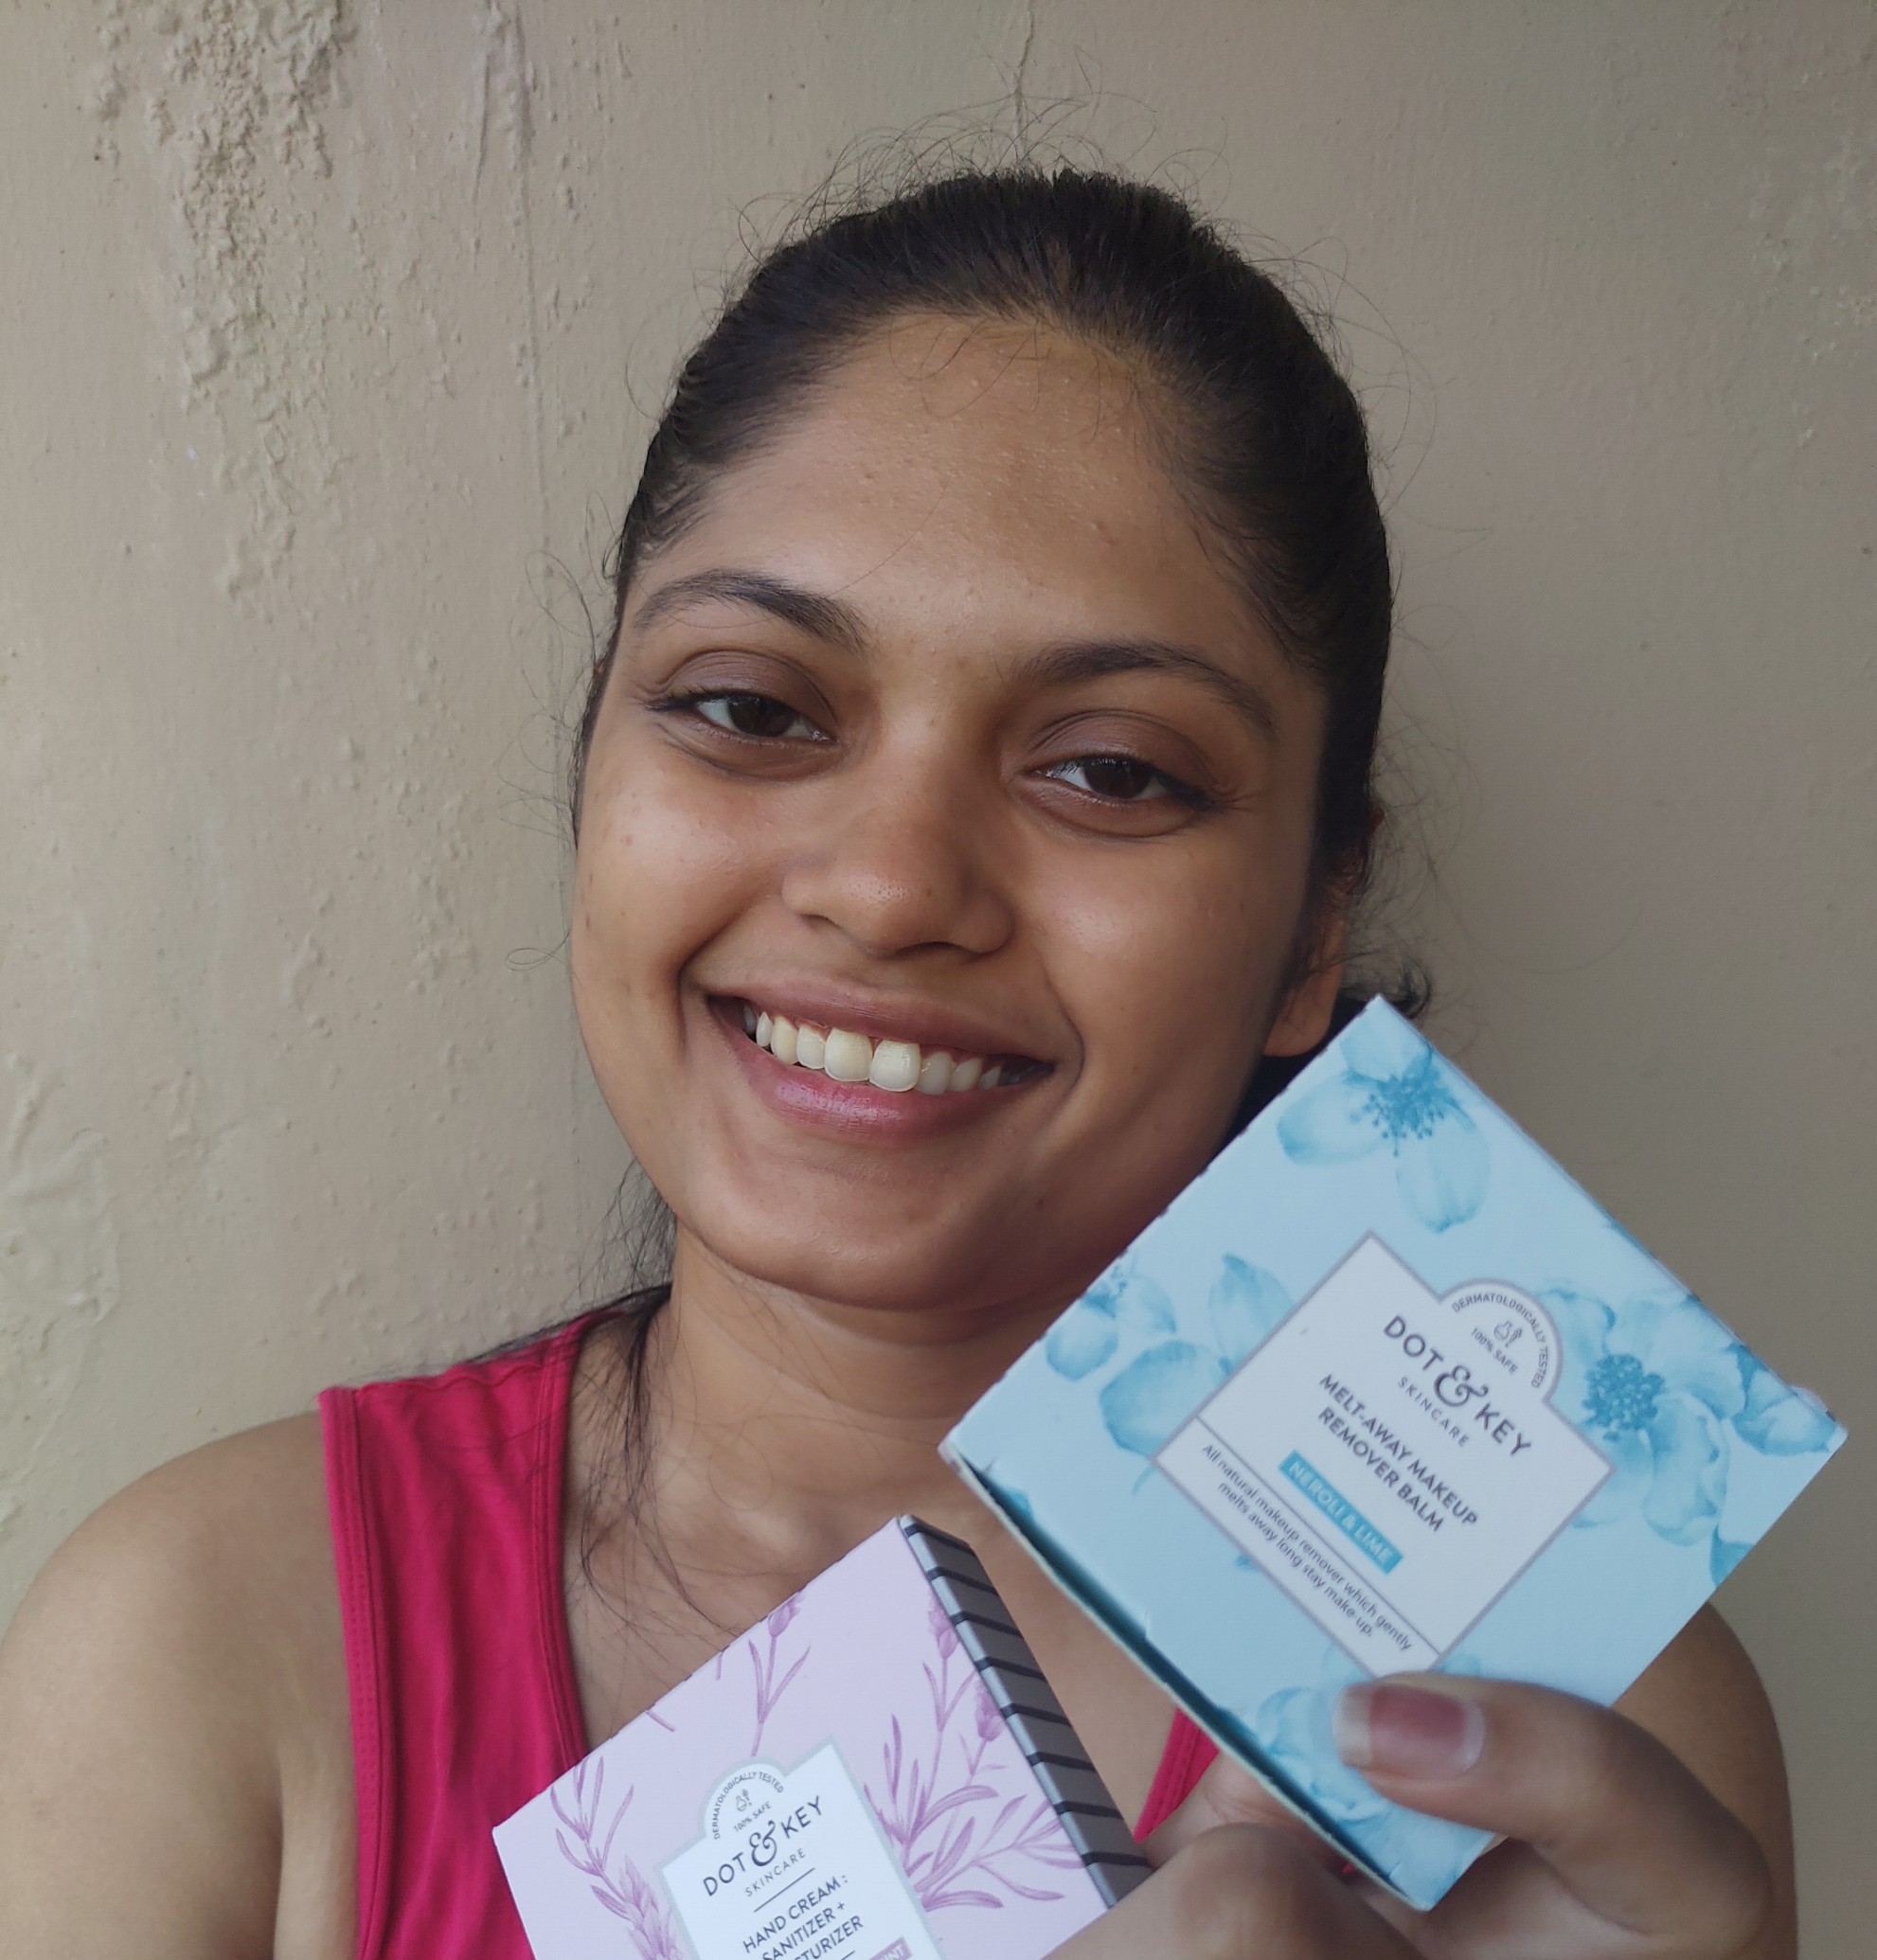 Dot & Key Melt Away Makeup Remover Balm-Must try makeup remover-By jyoti_kishor-1